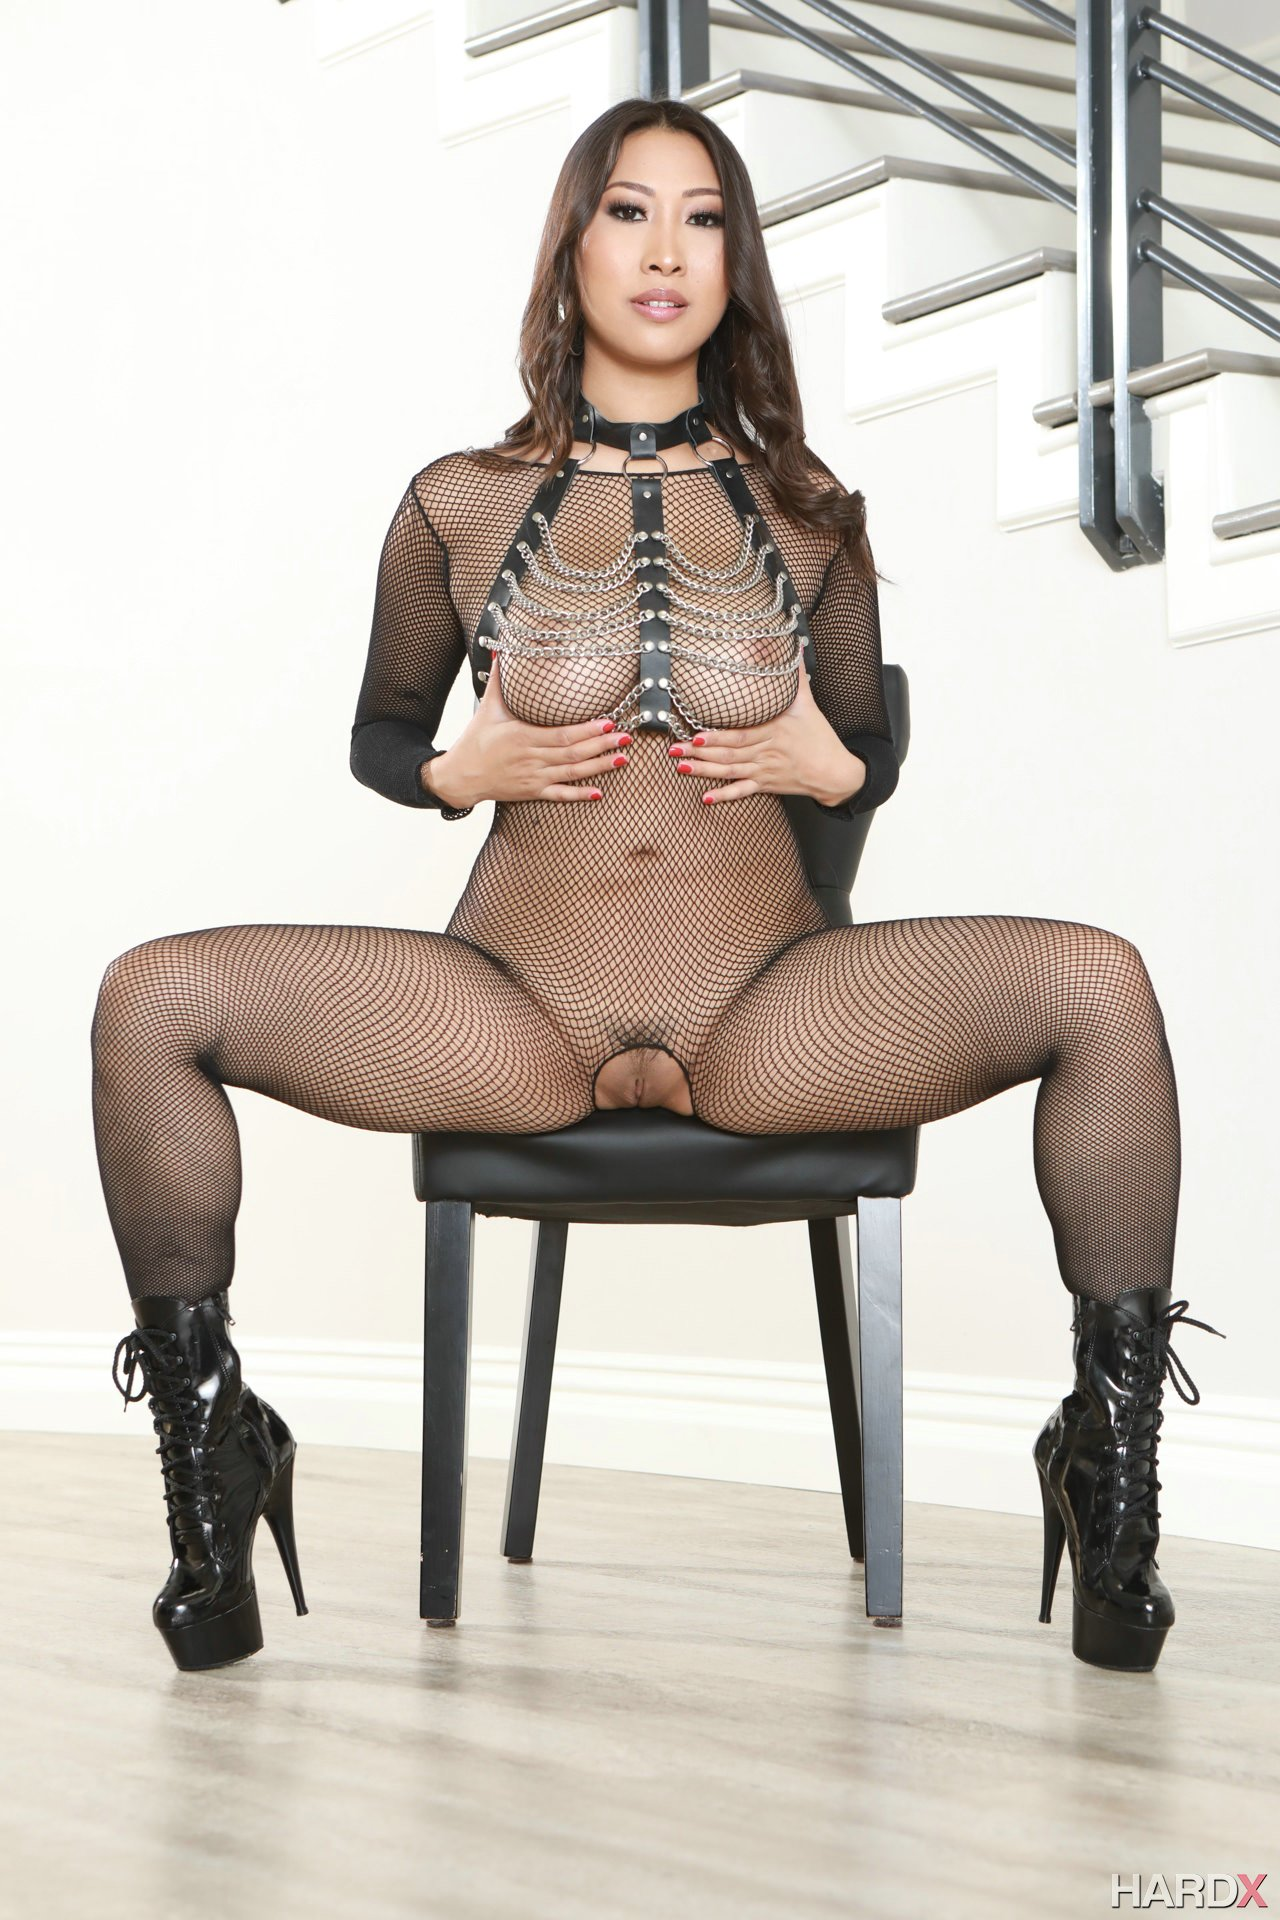 Sharon Lee In Black Body Stockings And Sexy Boots Exposing -5440